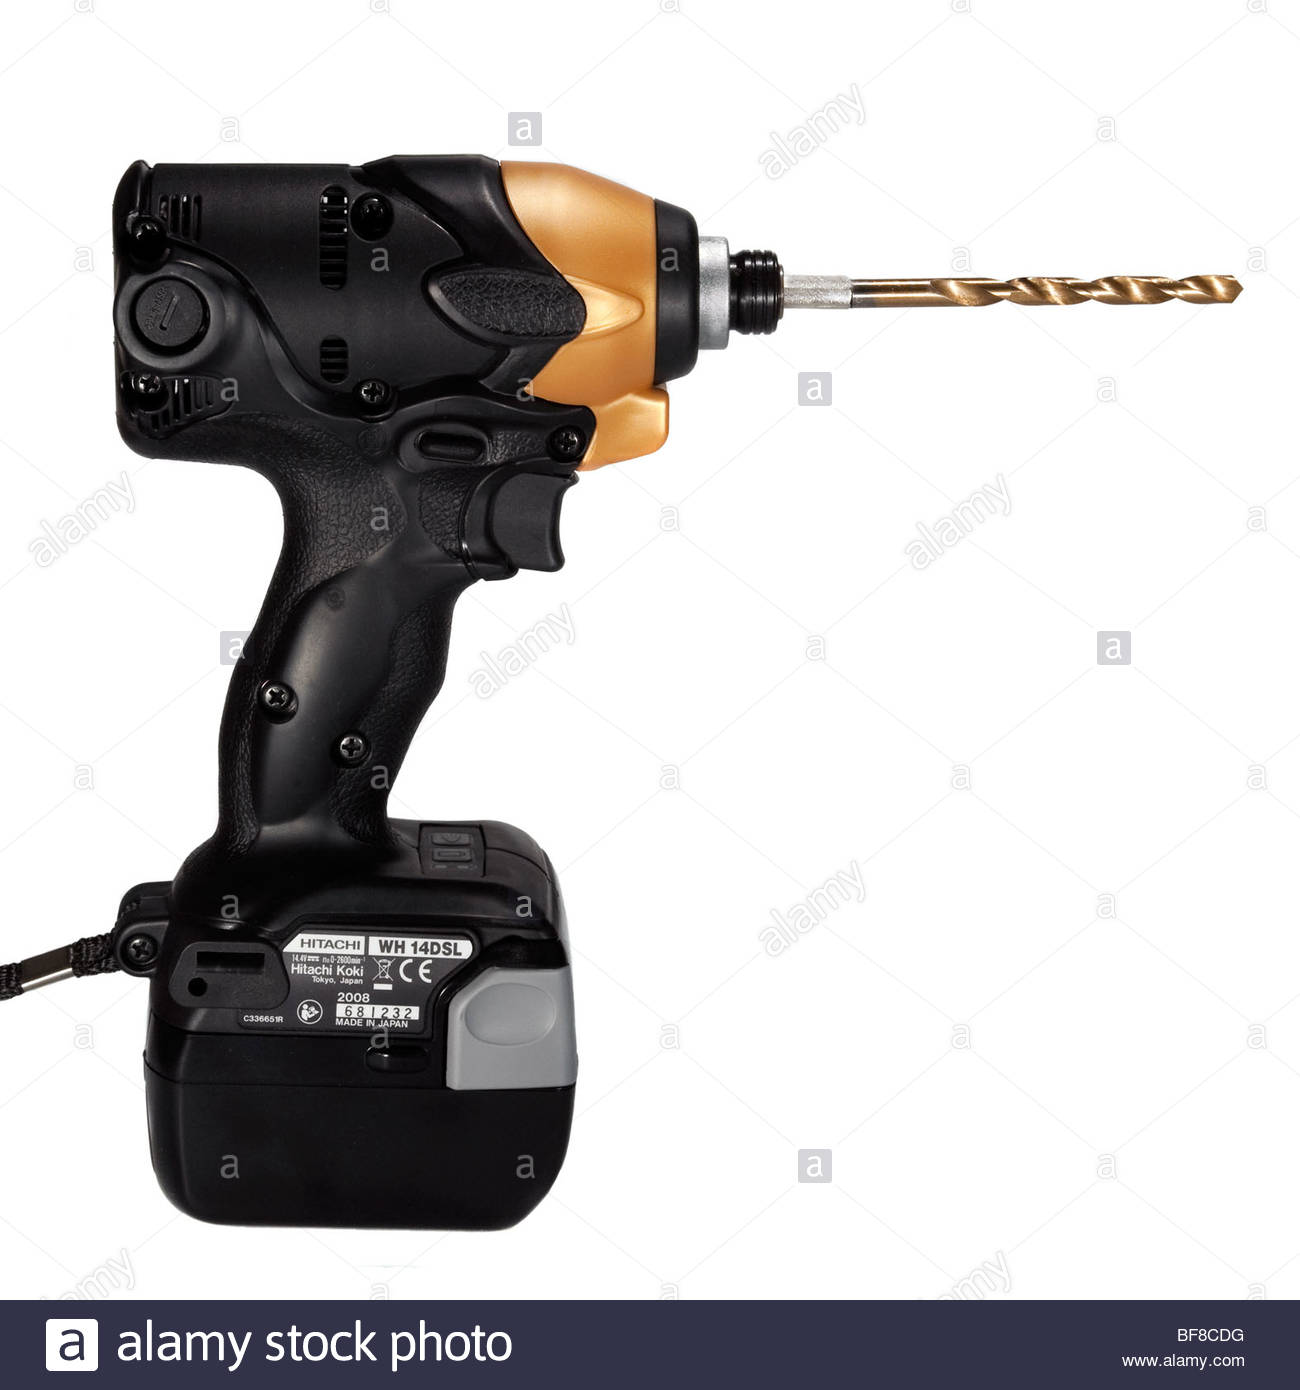 hitachi cordless drill. hitachi cordless drill cut out on a white background. impact driver with li-on rechargeable battery.